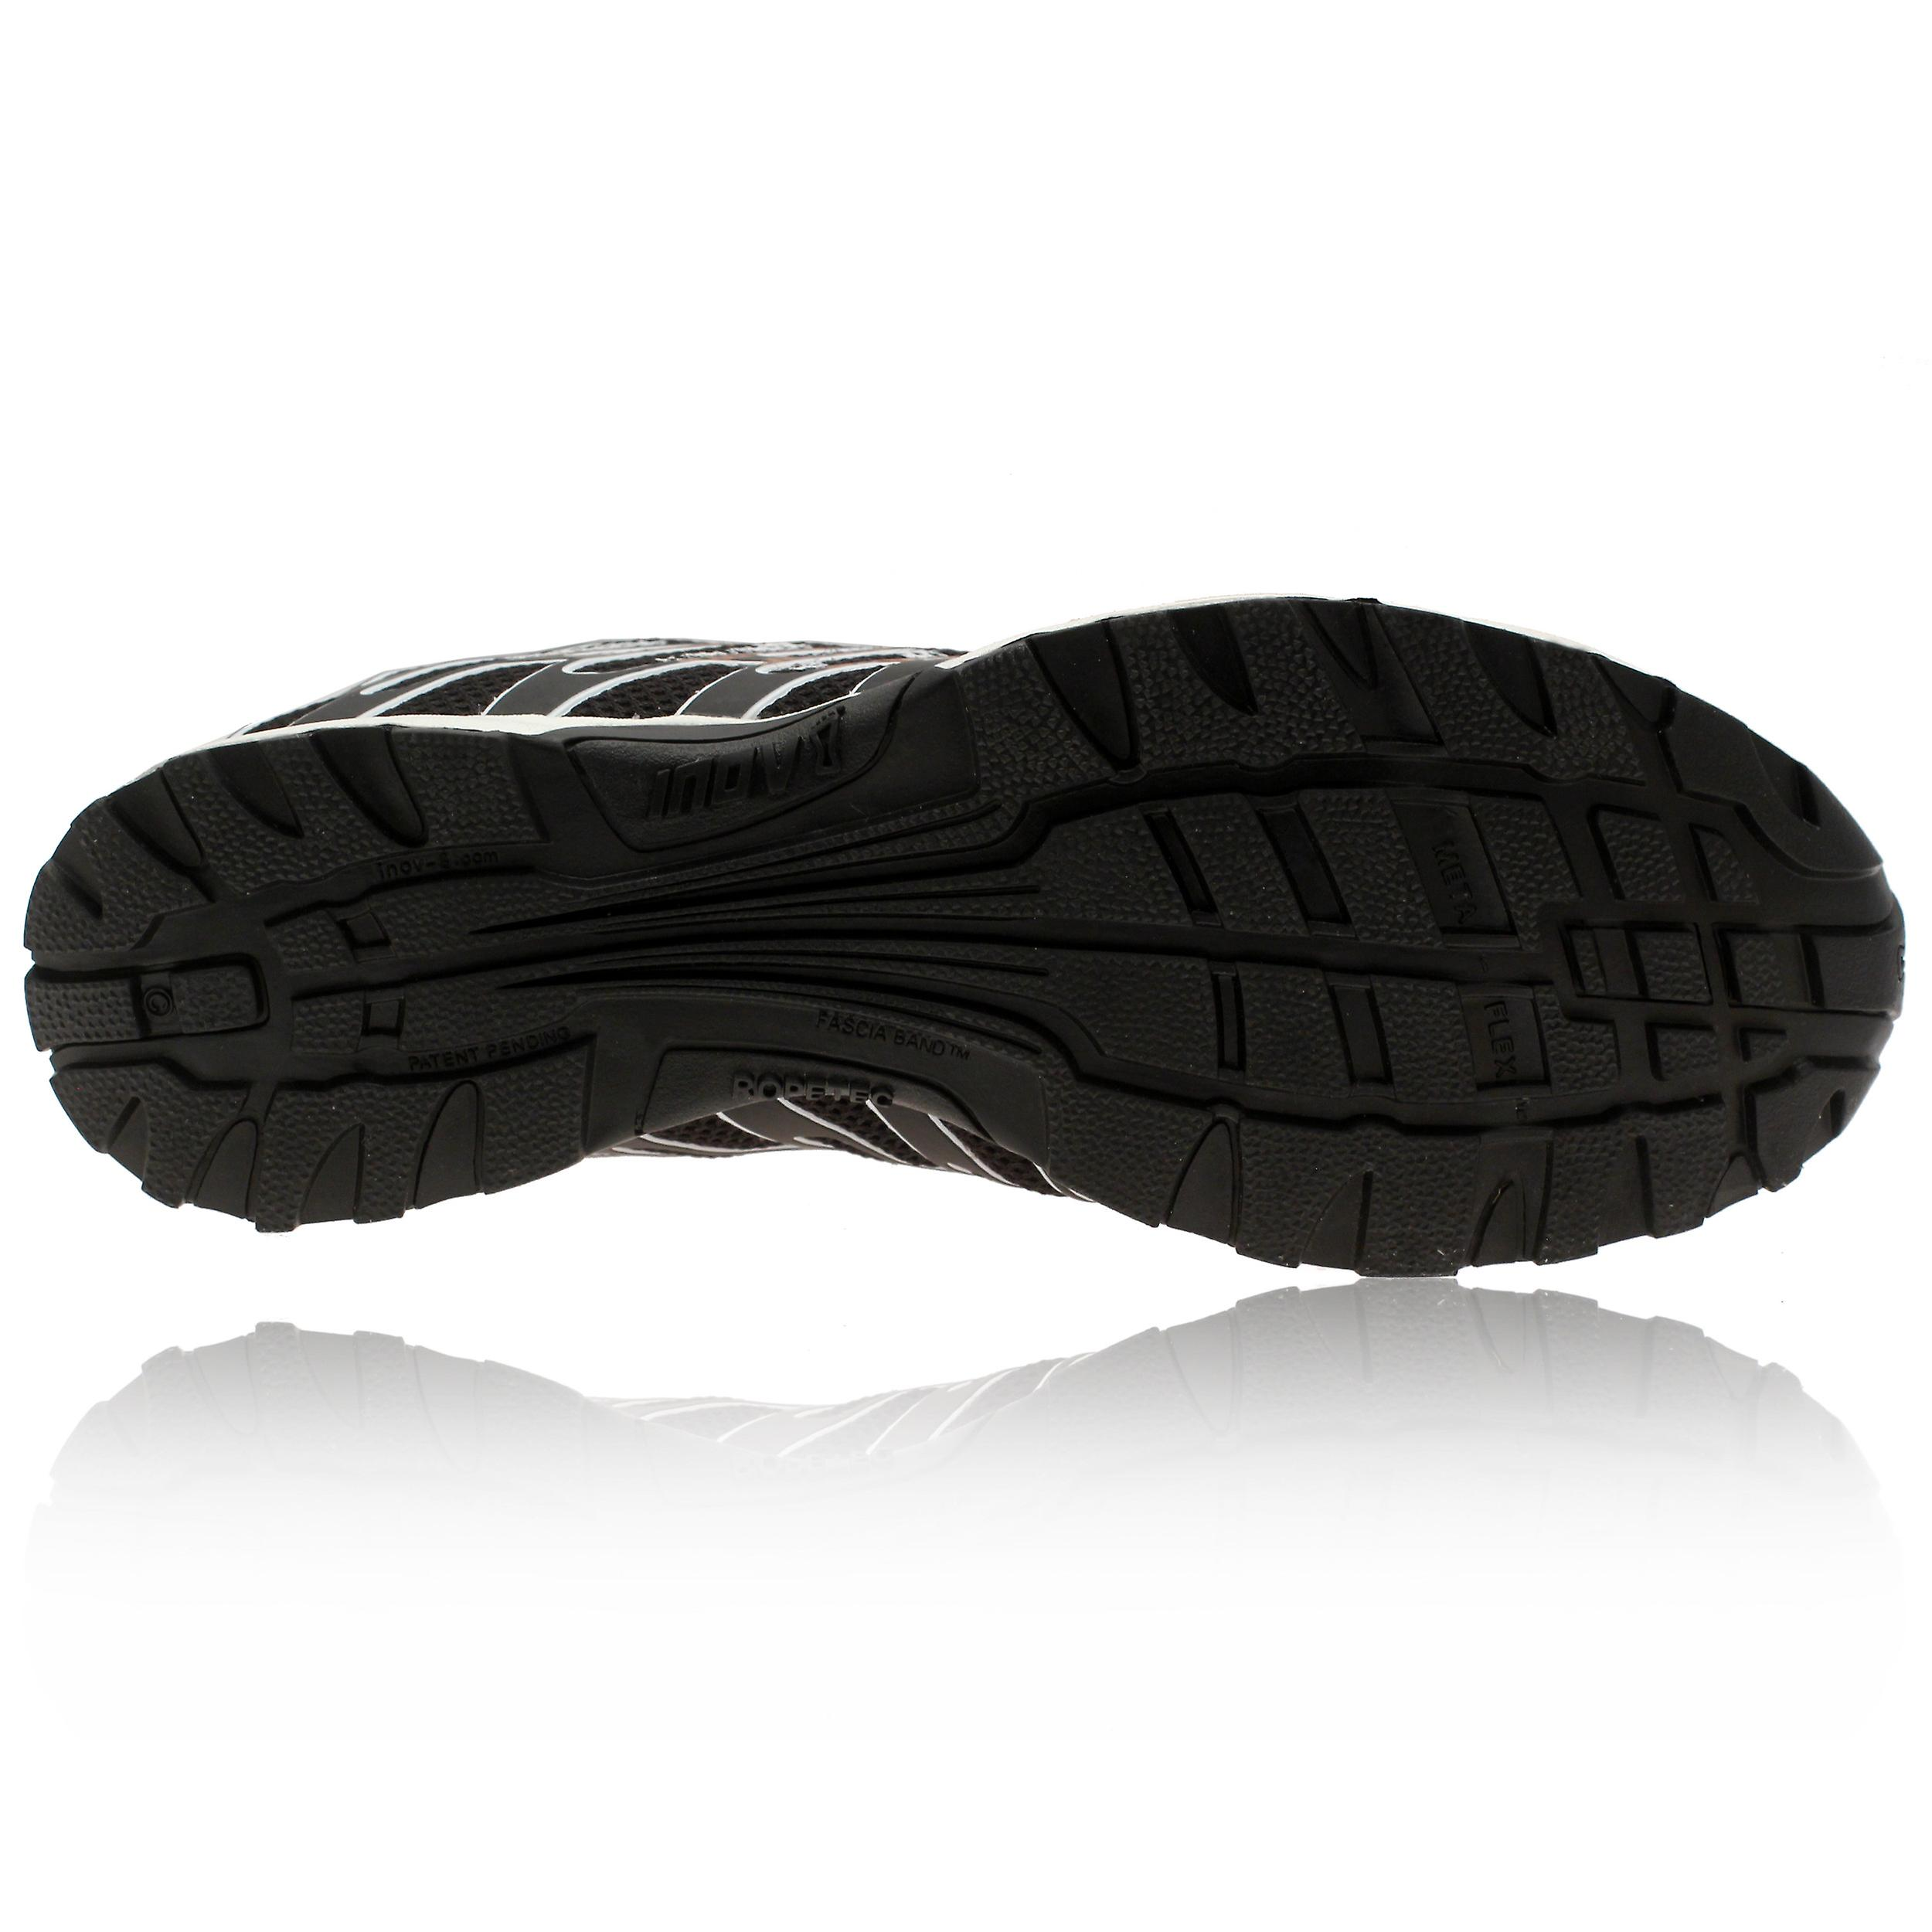 Inov8 F-Lite 240 Fitness Shoes (Standard Fit)